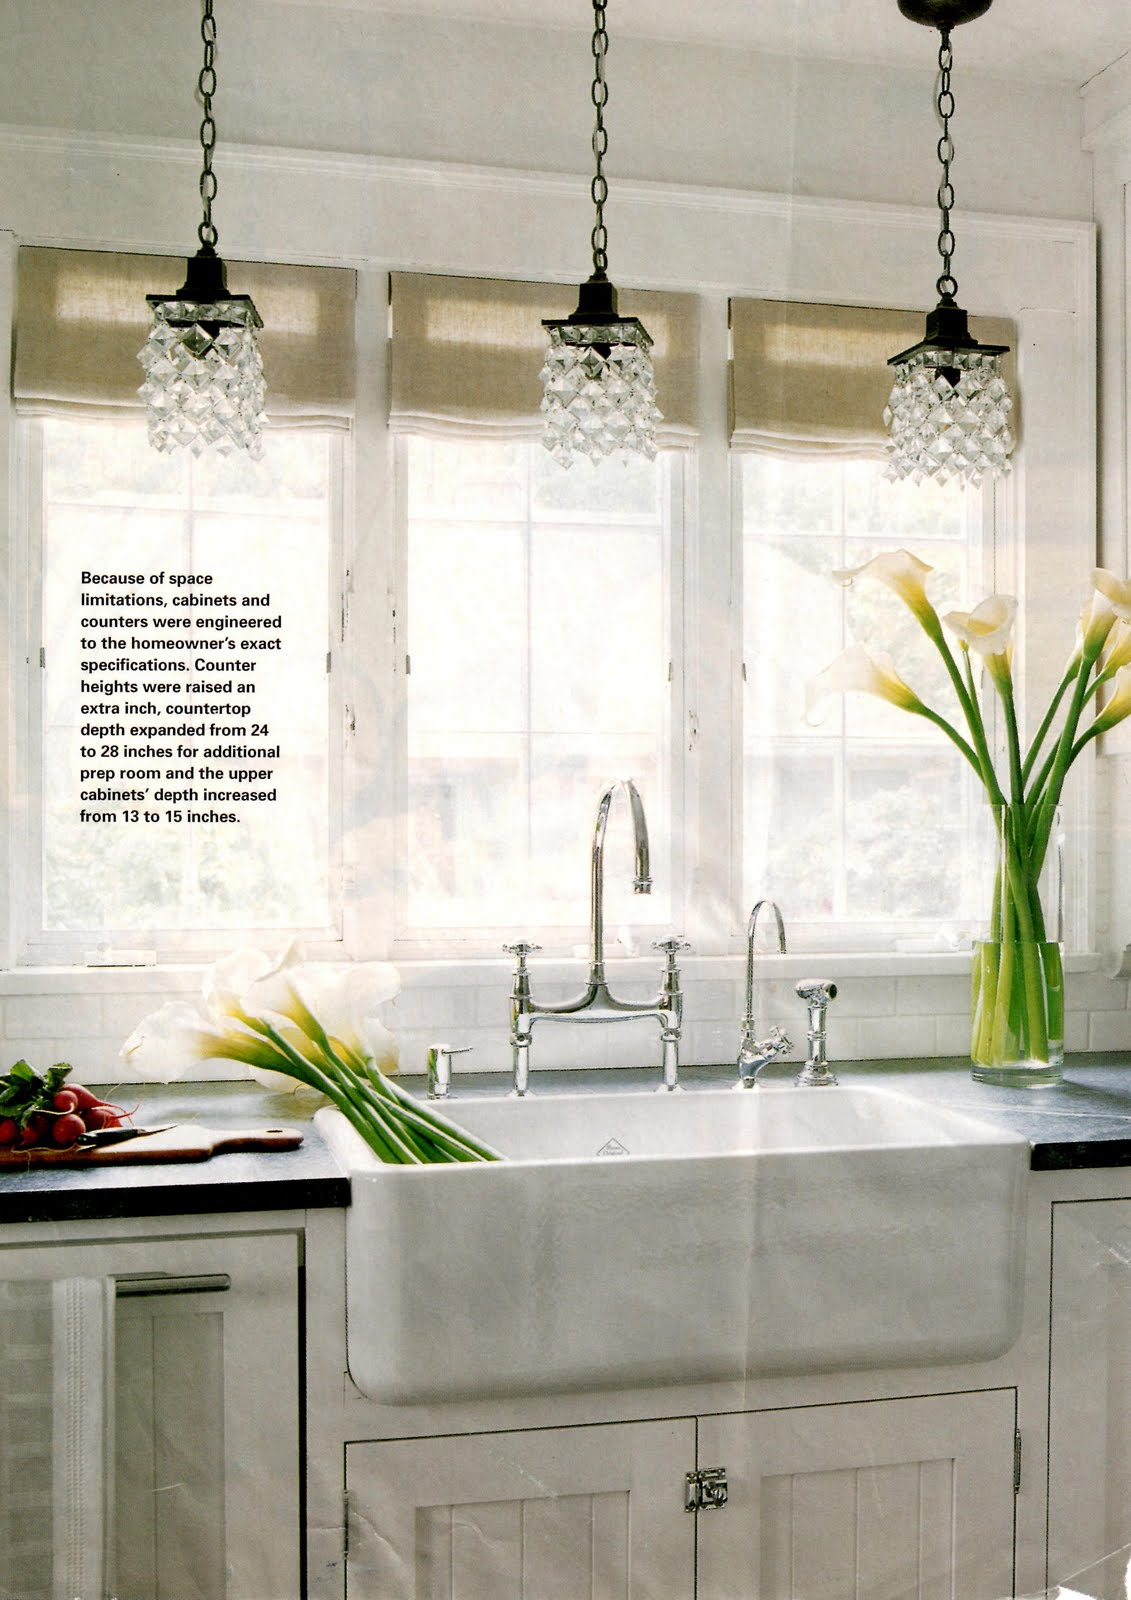 pendants over the kitchen sink design manifestdesign